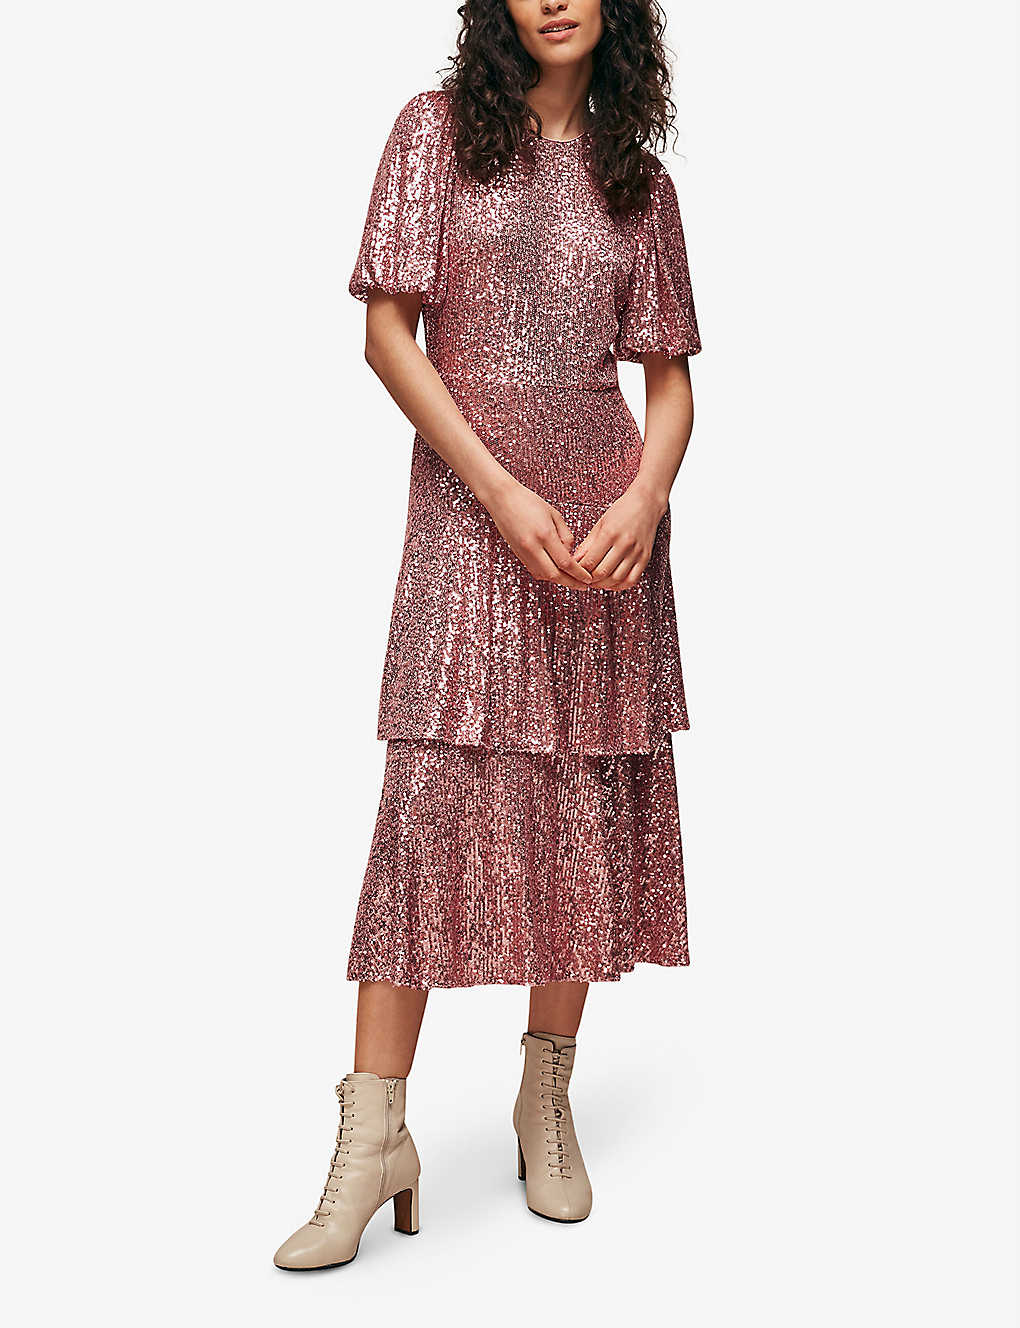 WHISTLES Arabelle Tiered Sequinned Midi Dress